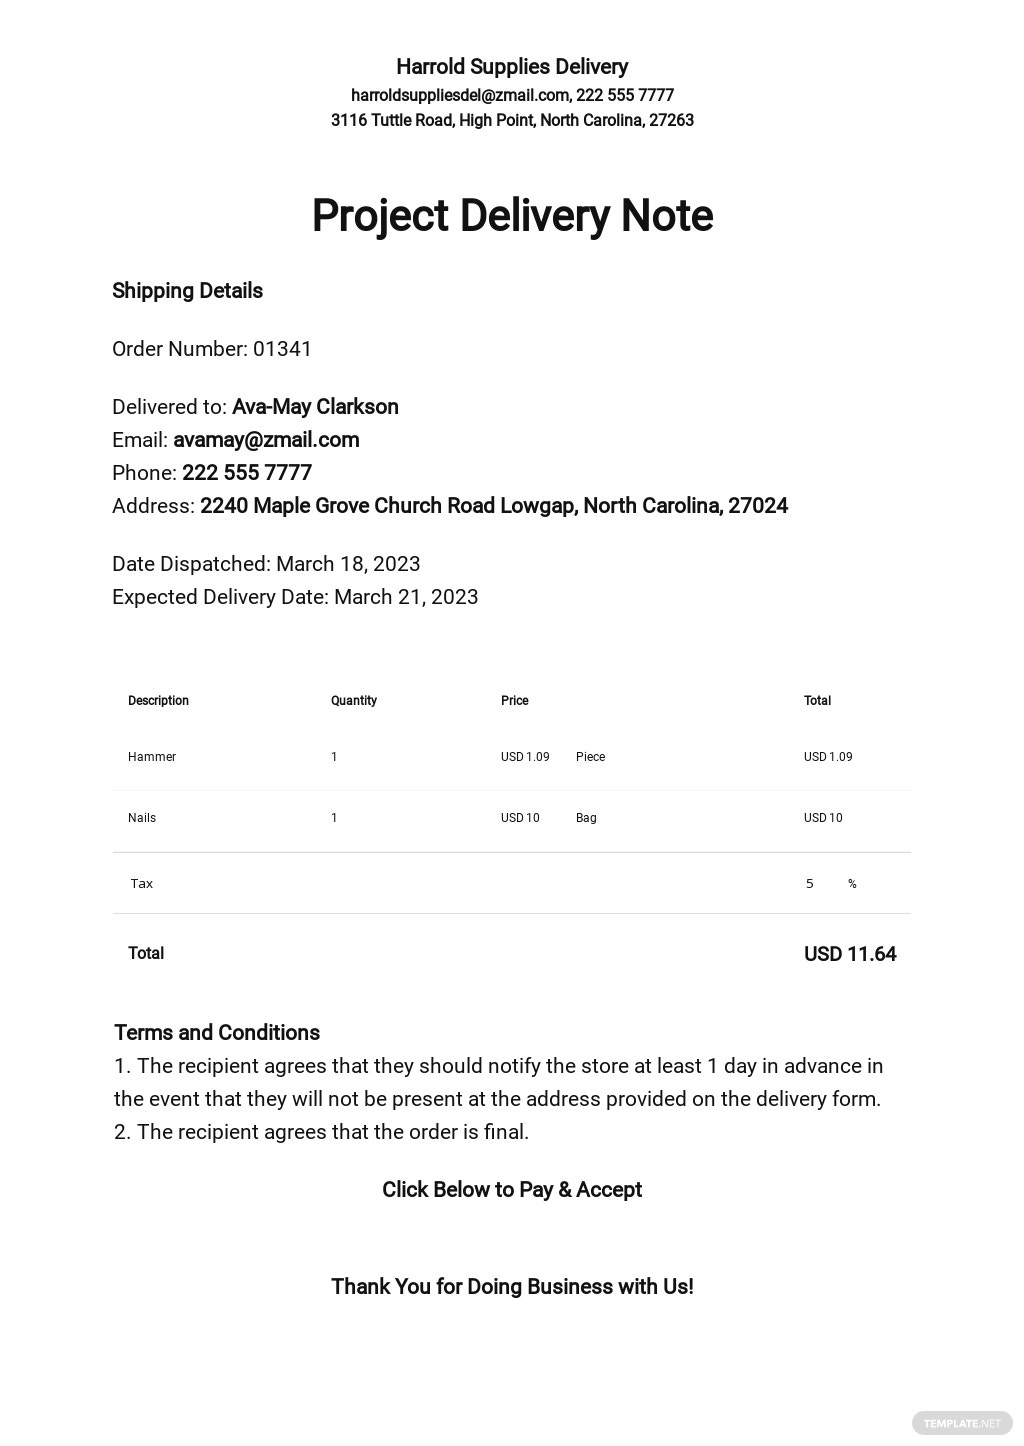 Project Delivery Note Template